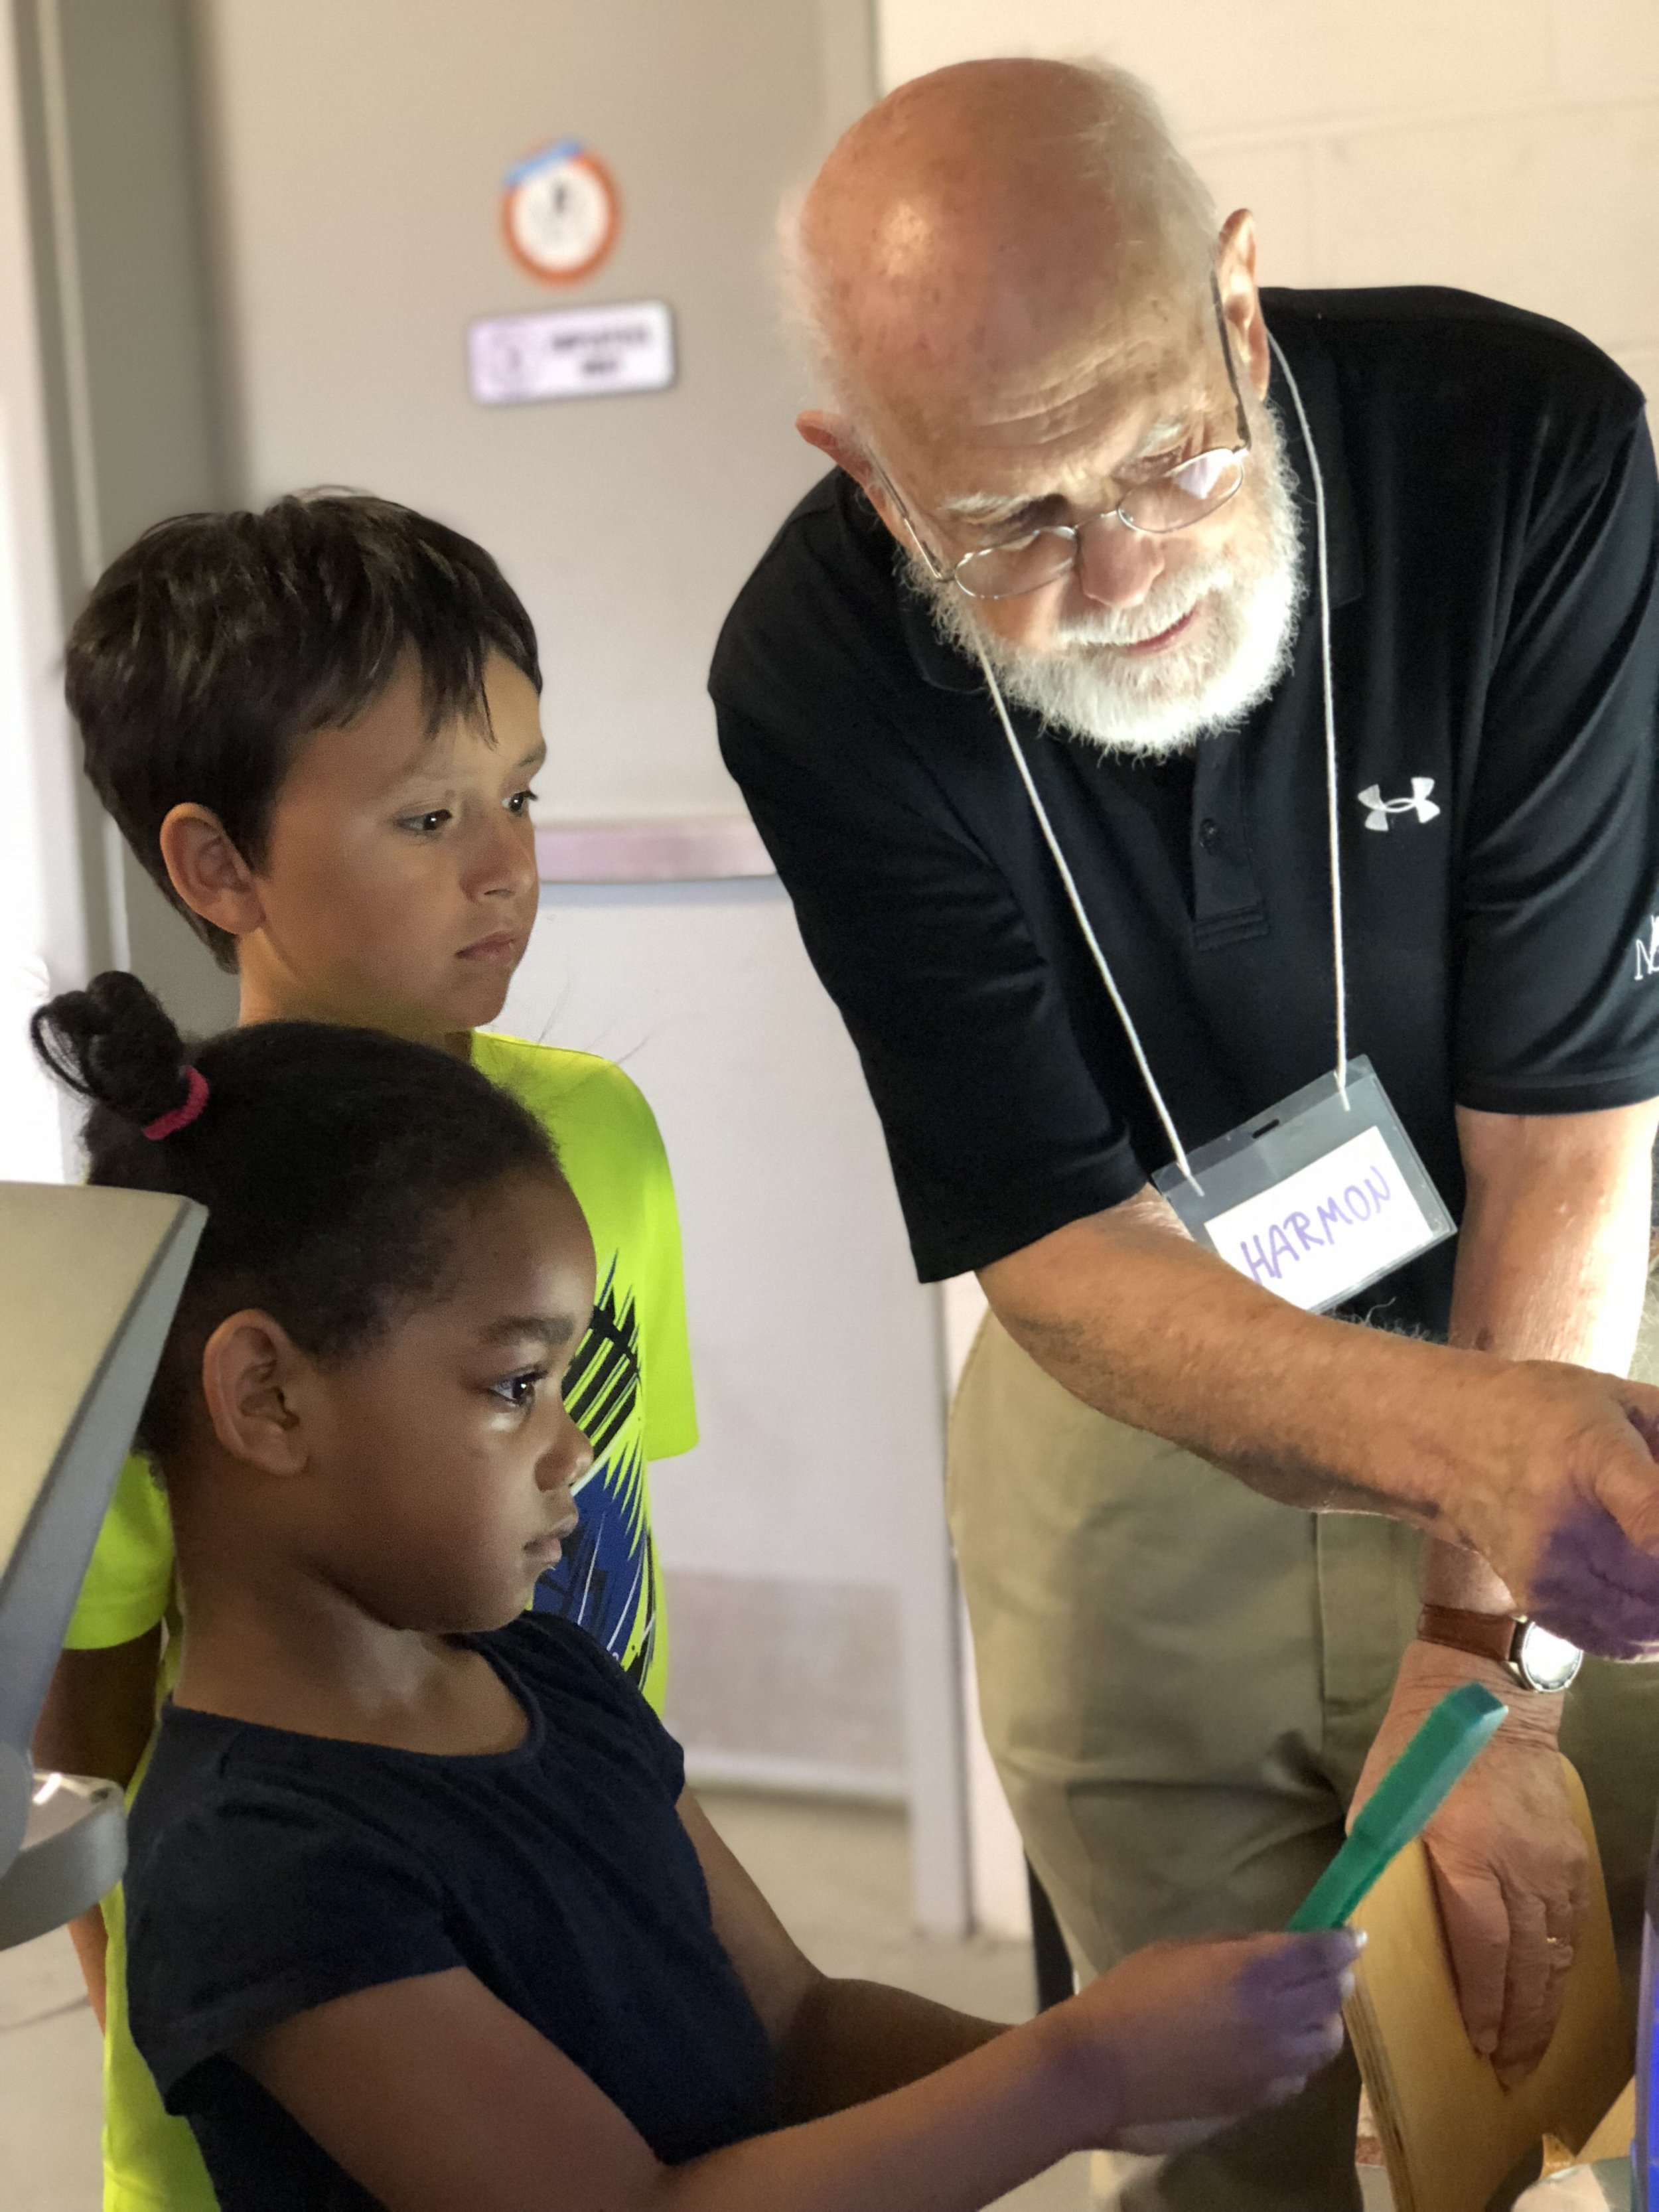 A Museum volunteer works with children on a filtered light project during Science Sunday.